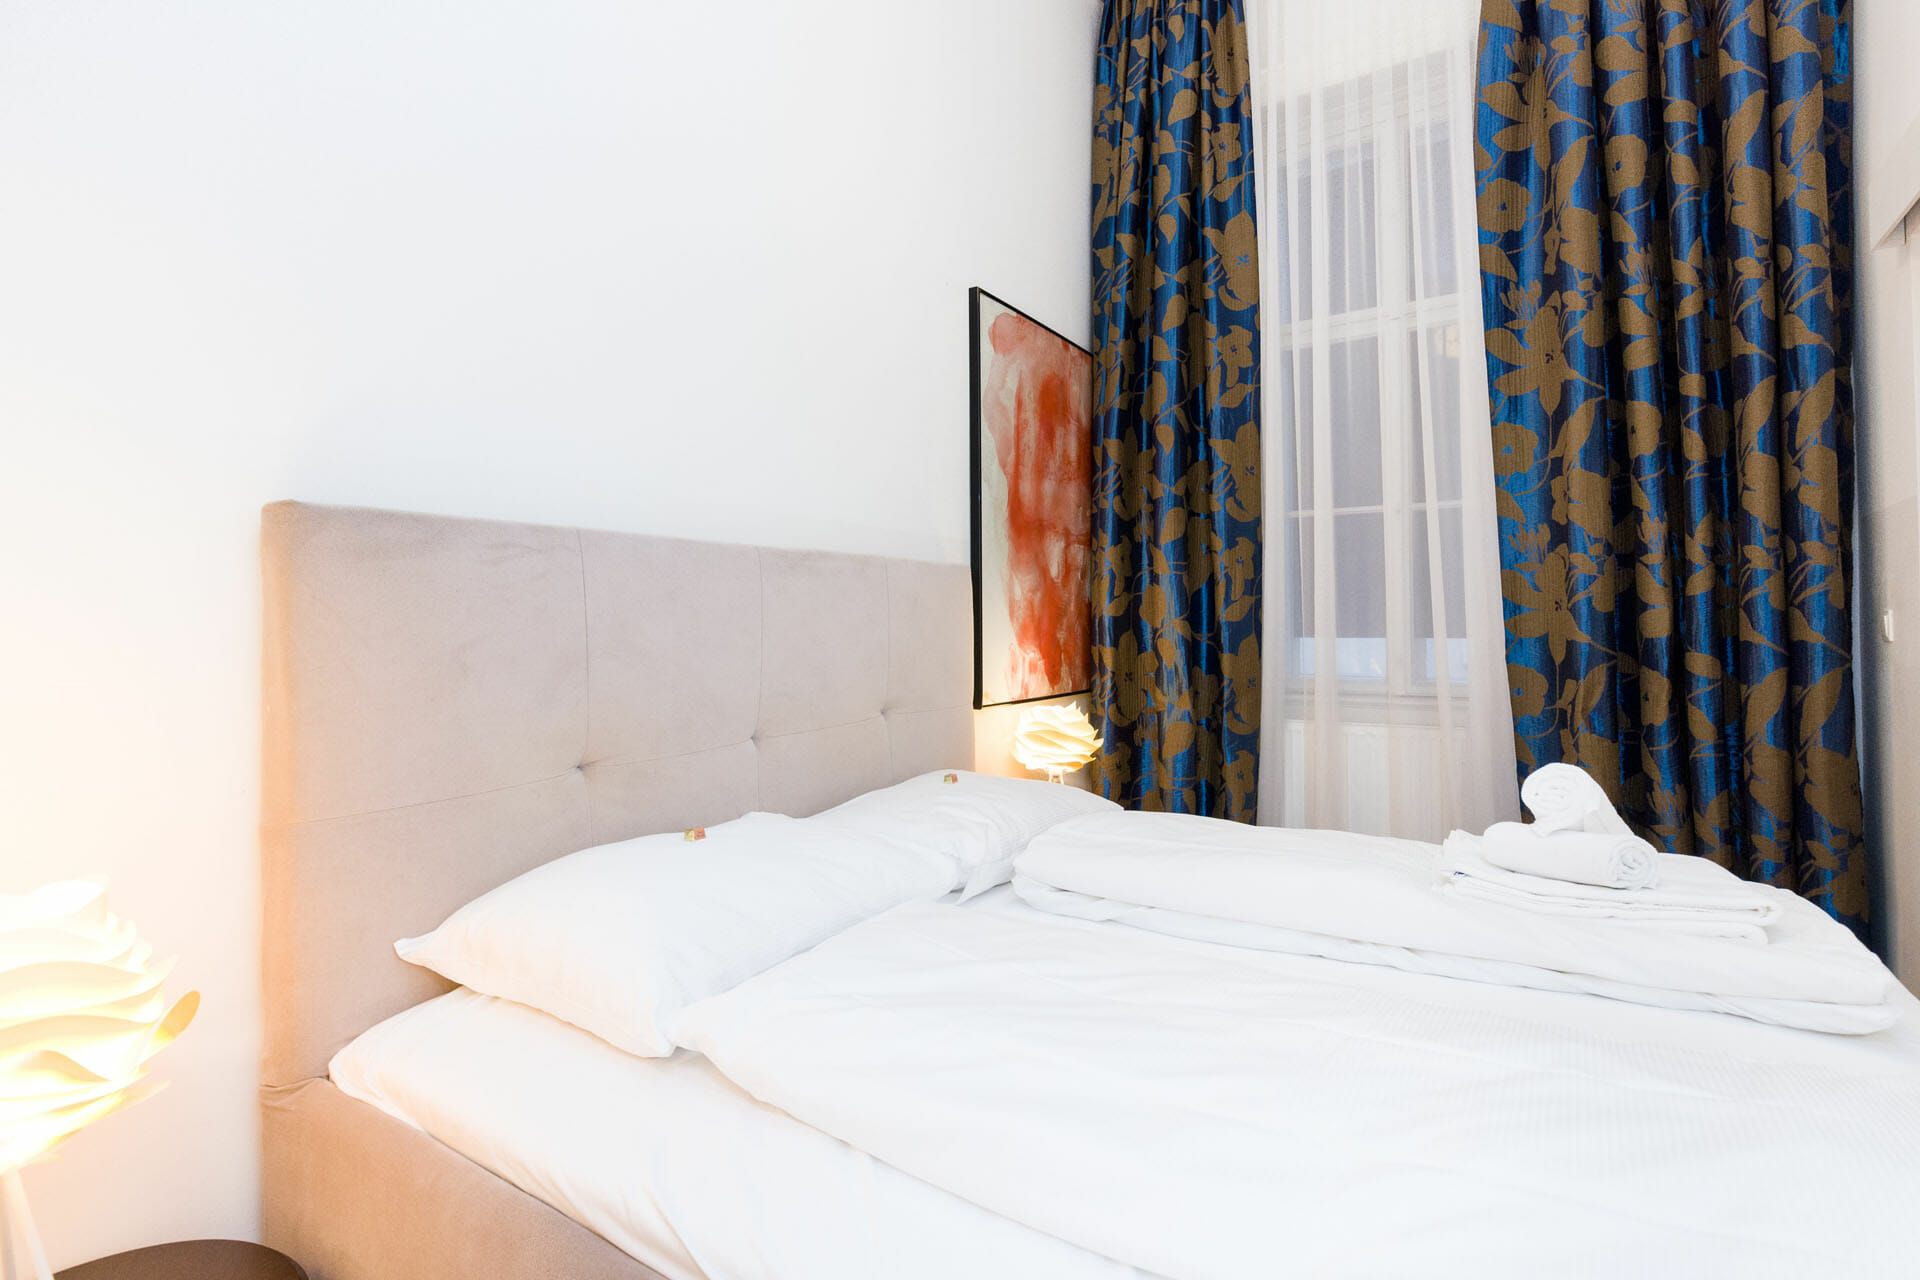 Prestige Apartments in Vienna. Ideal city center of Vienna the Graben.The apartment is fully furnished, TV, Cable, wireless, king size bed, cafe machine, wash machine and lots more. The apartment has recently been renovated and newly furnished in a modern, elegant design.